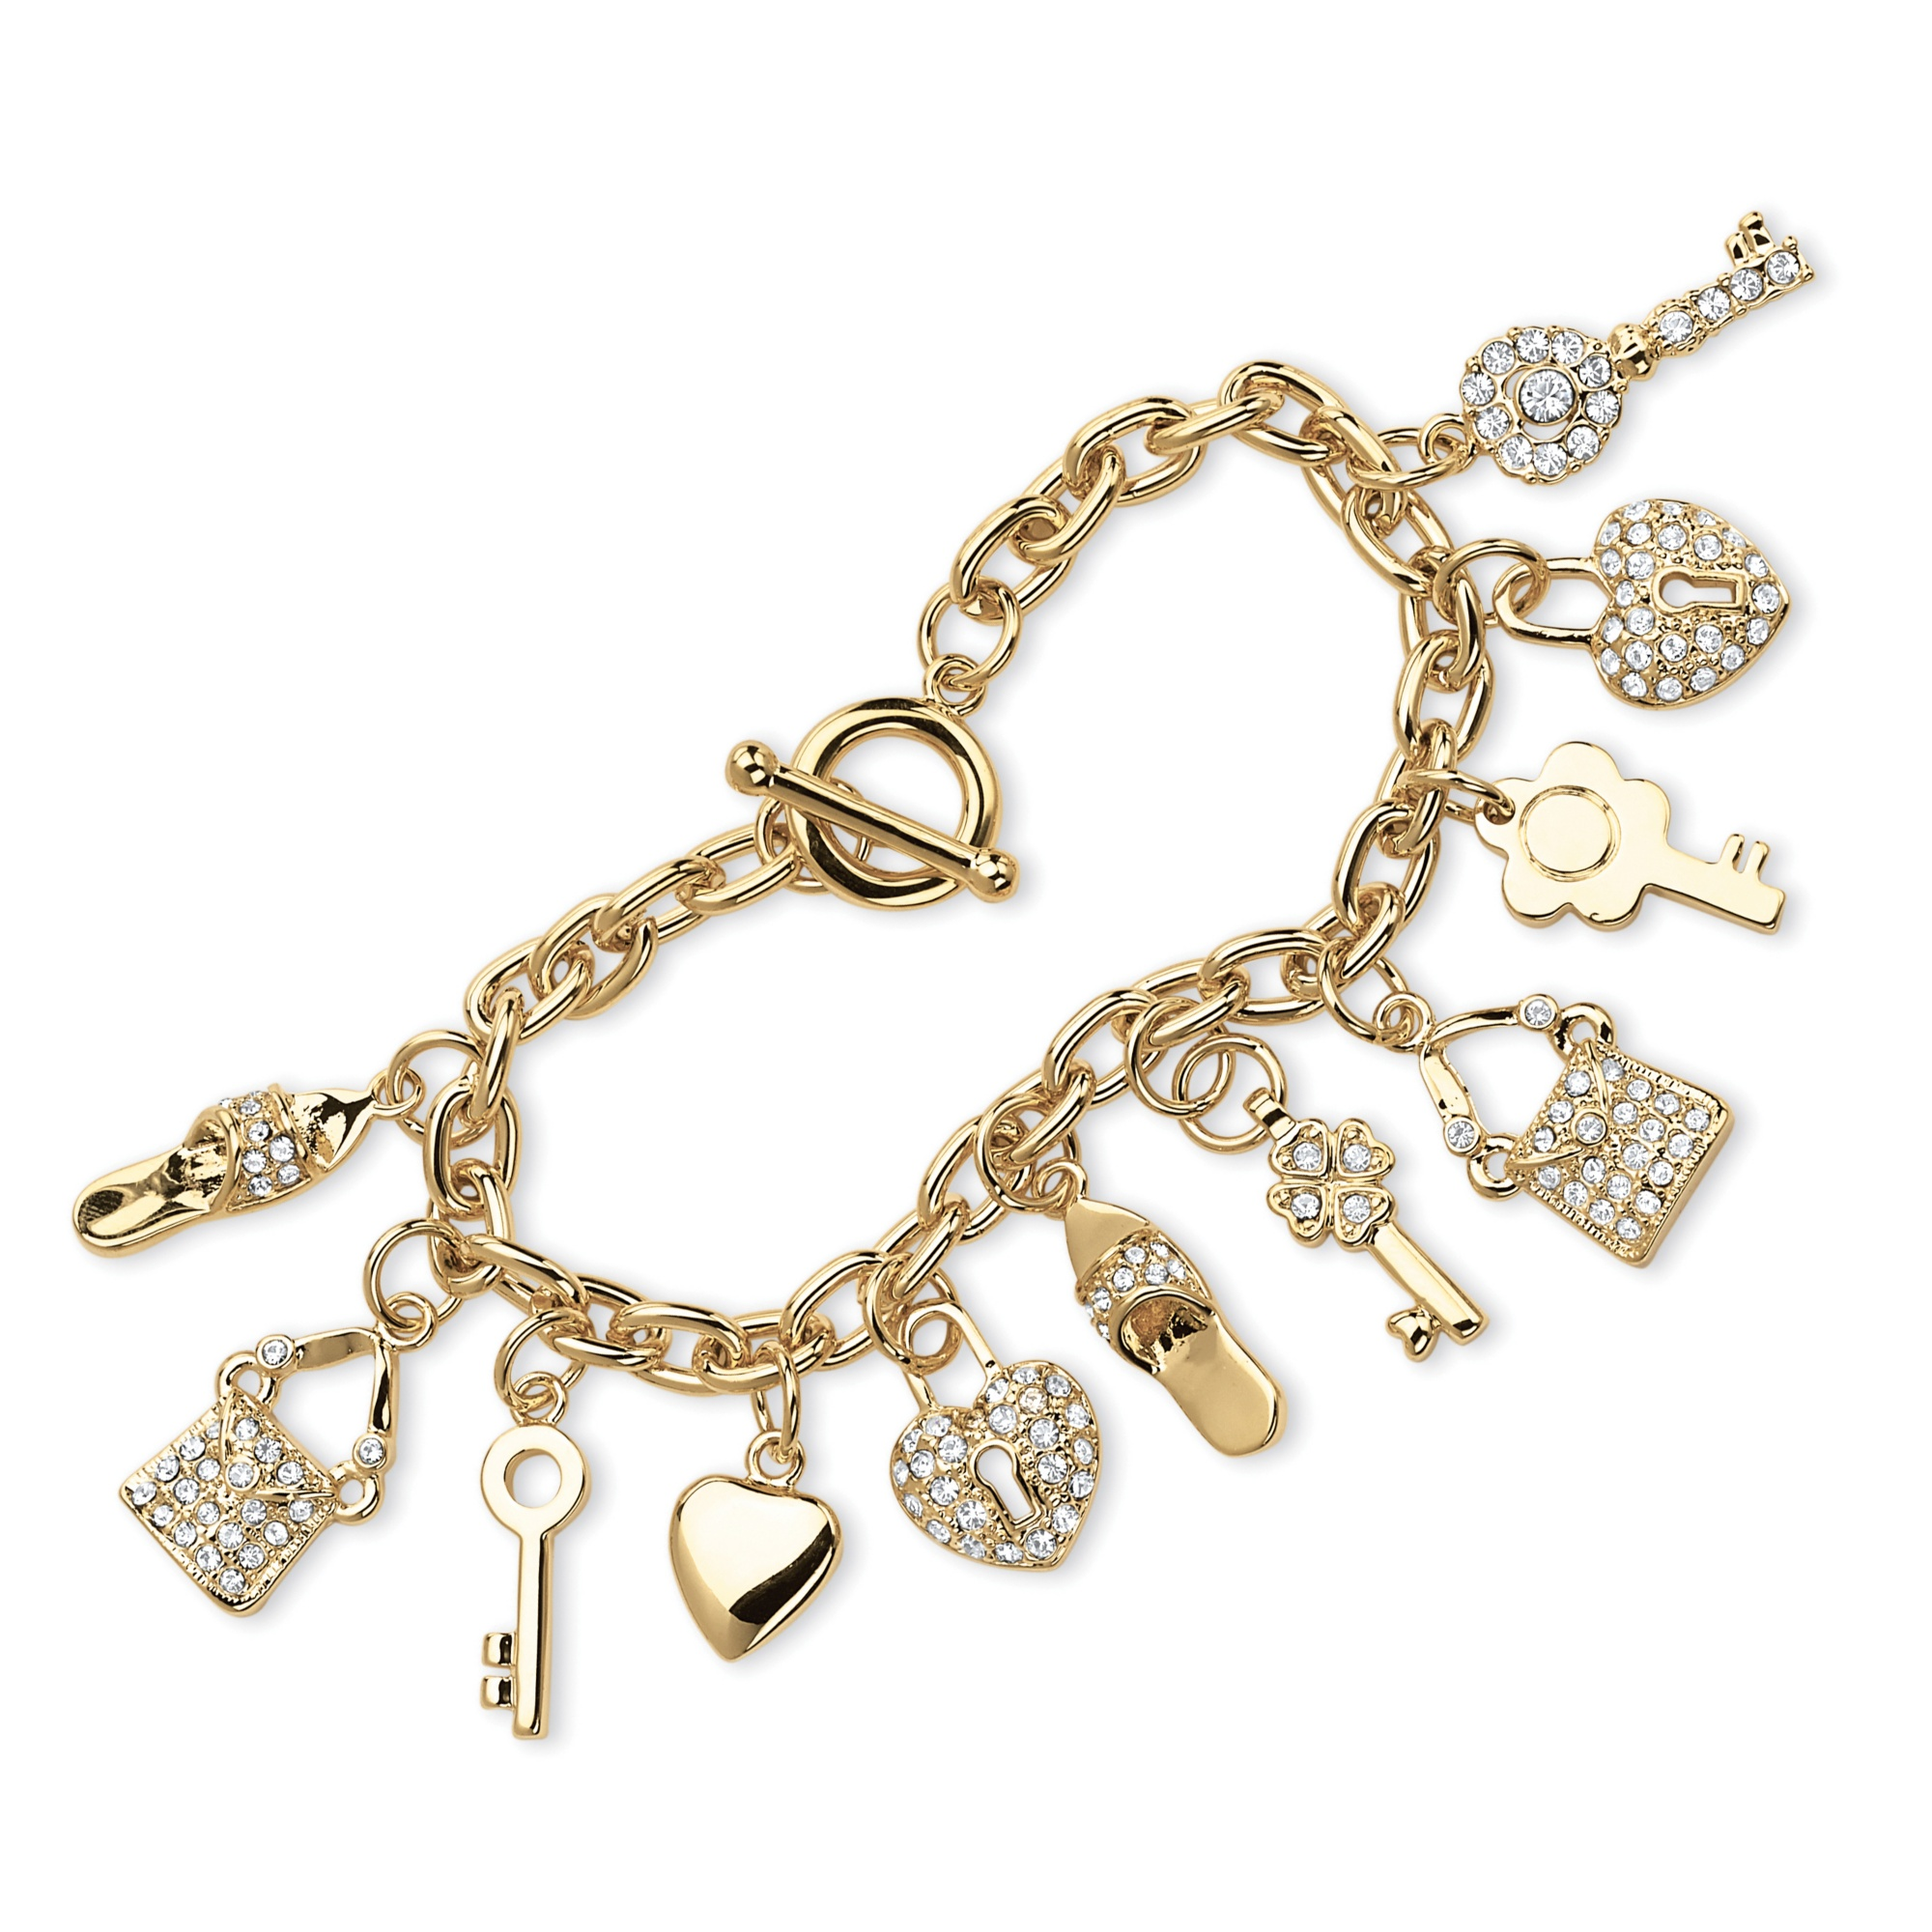 Shoe Charm Bracelet: Round Crystal 14k Yellow Gold-Plated Shoe, Purse, Heart